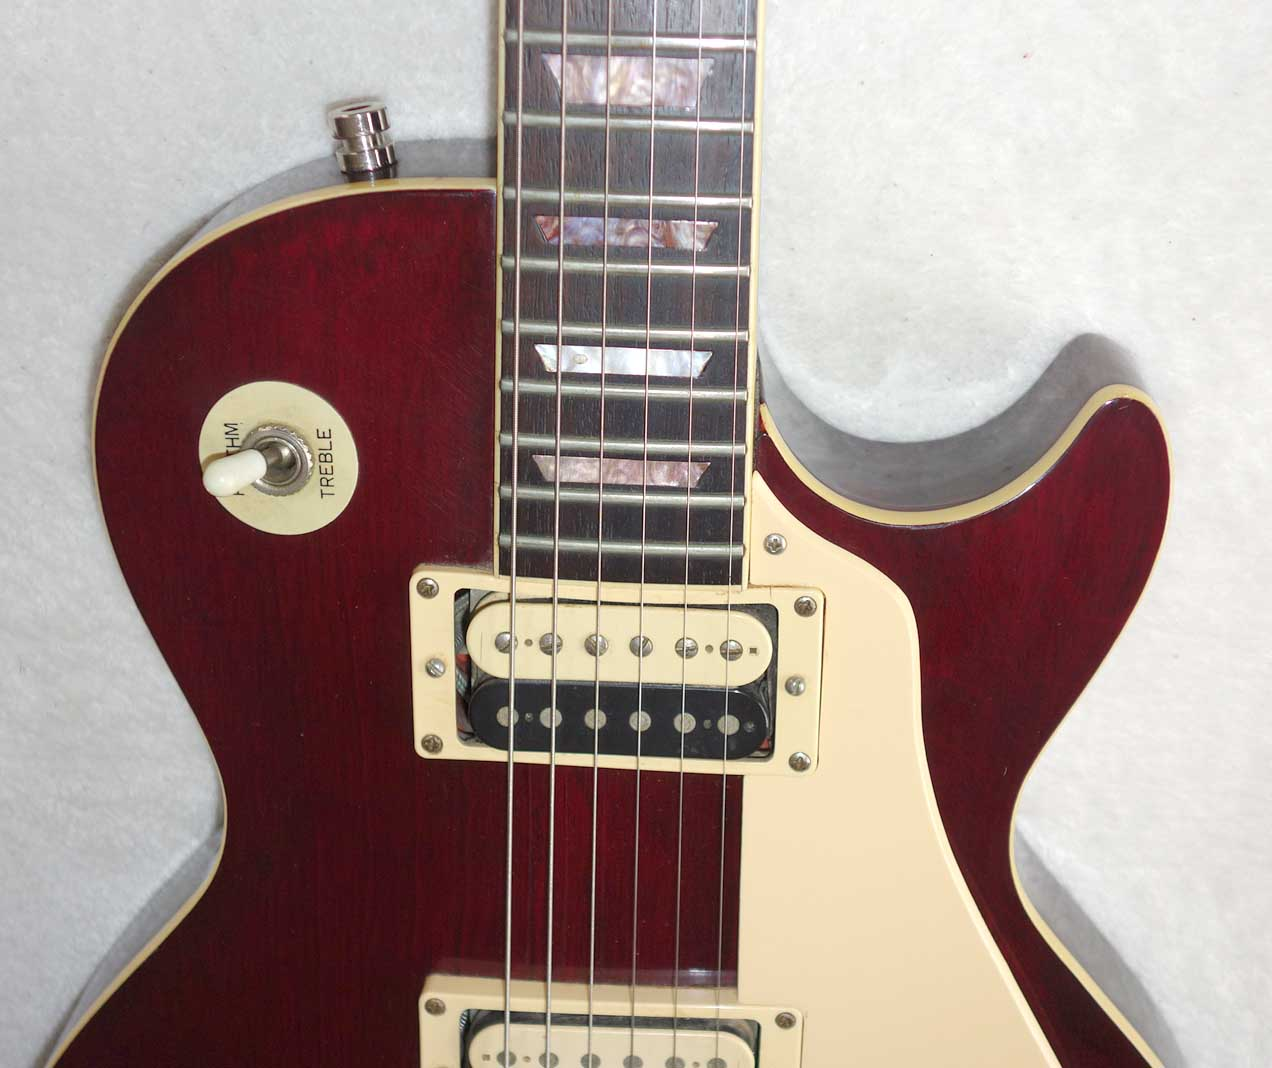 Vintage 1980 Vantage Spirit VLP-510 Les Paul Copy Made in Japan / Matsumoku w/Upgraded Seymour Duncan PUPs, Active Boost